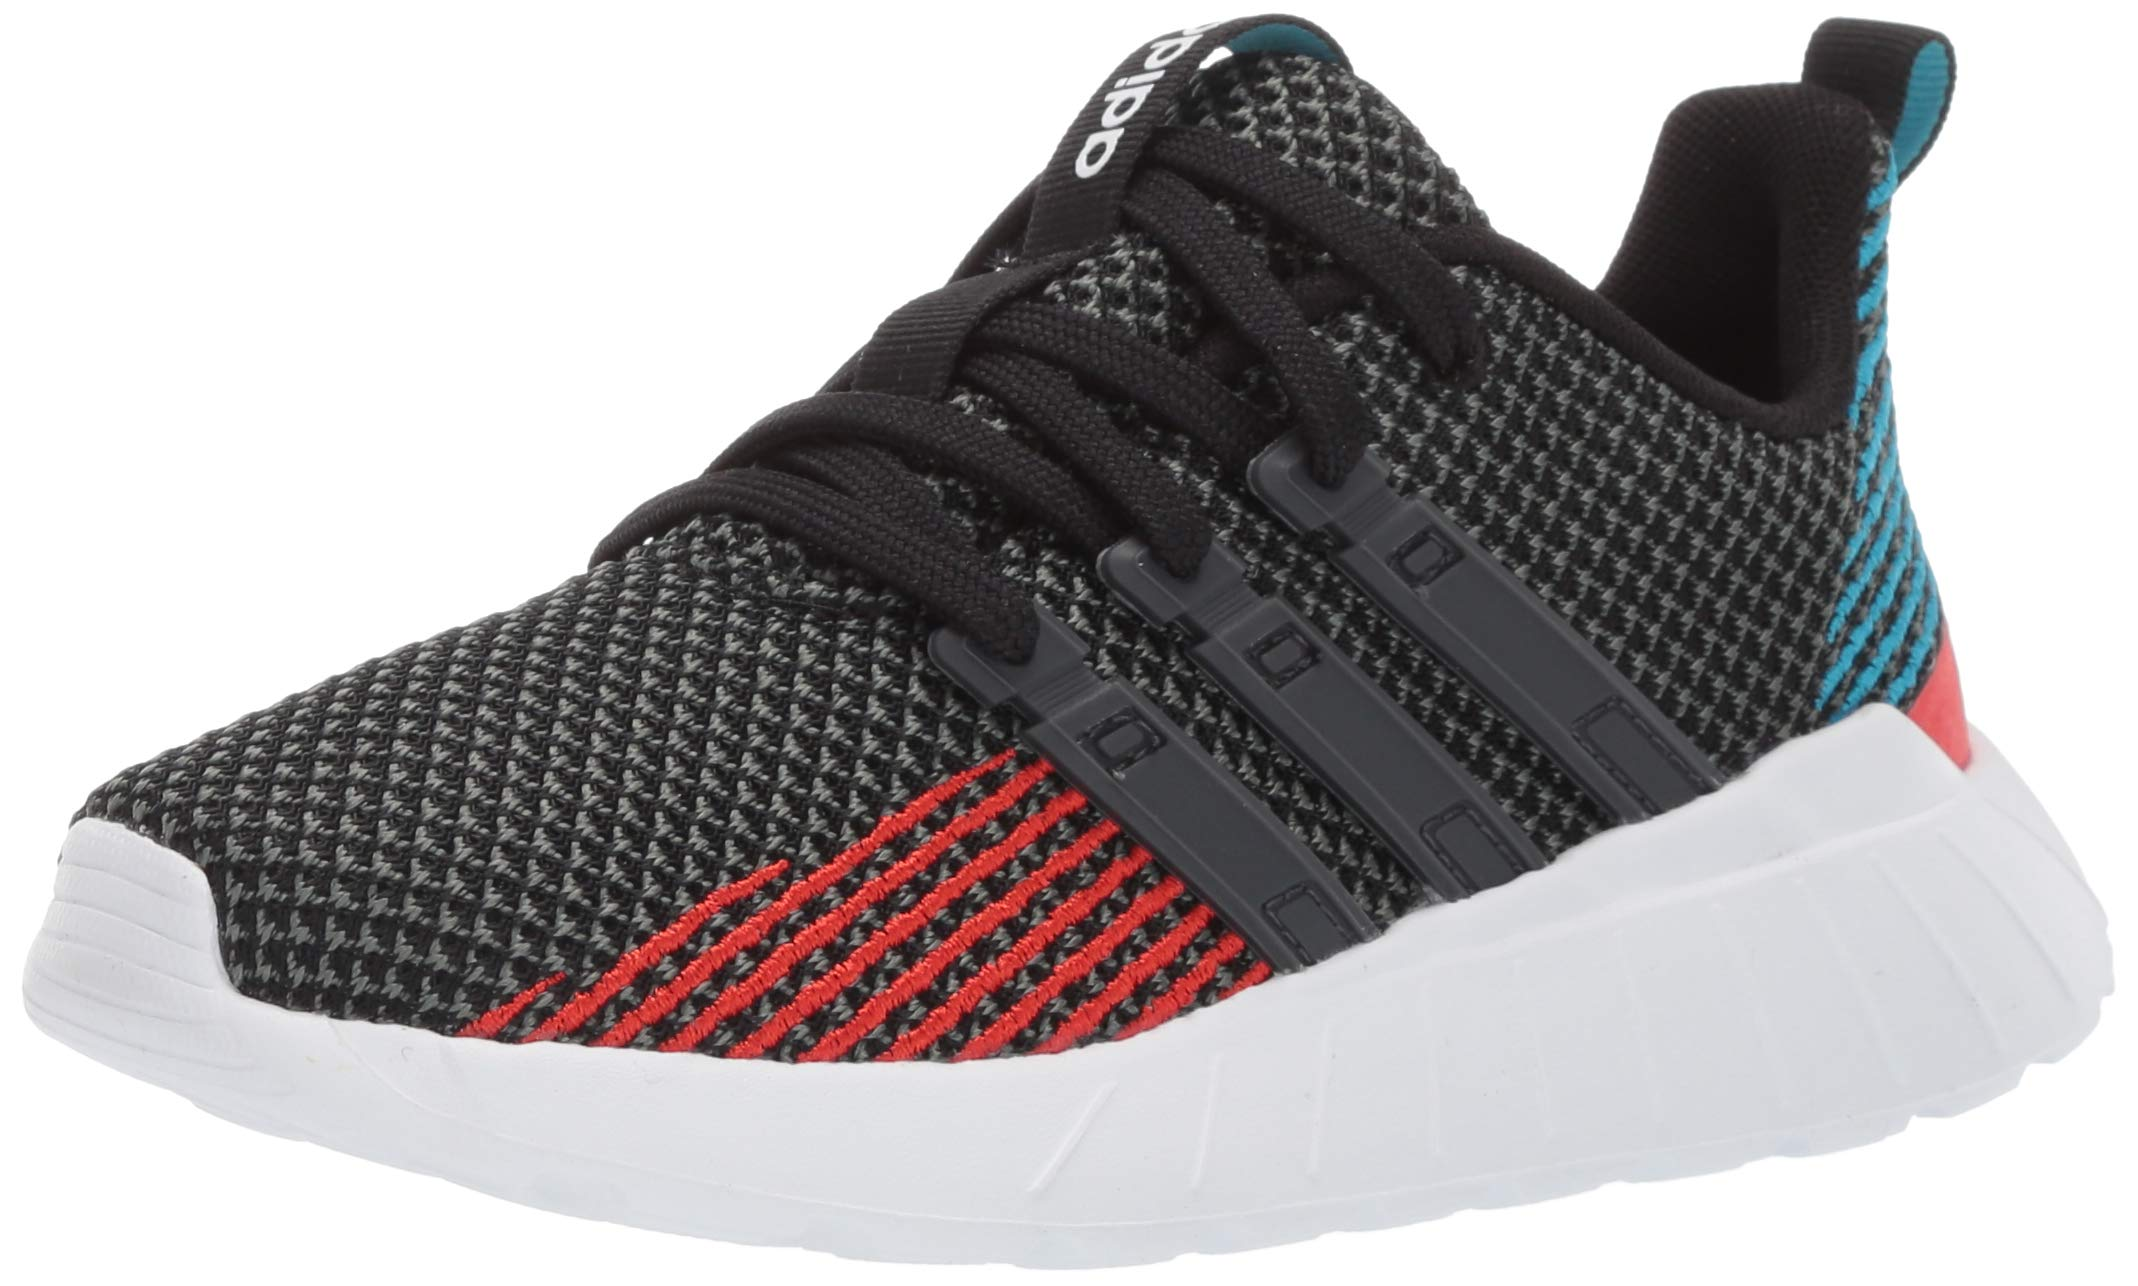 adidas Unisex-Kid's Questar Flow Running Shoe, Black/Grey/Active red, 11.5K M US Little Kid by adidas